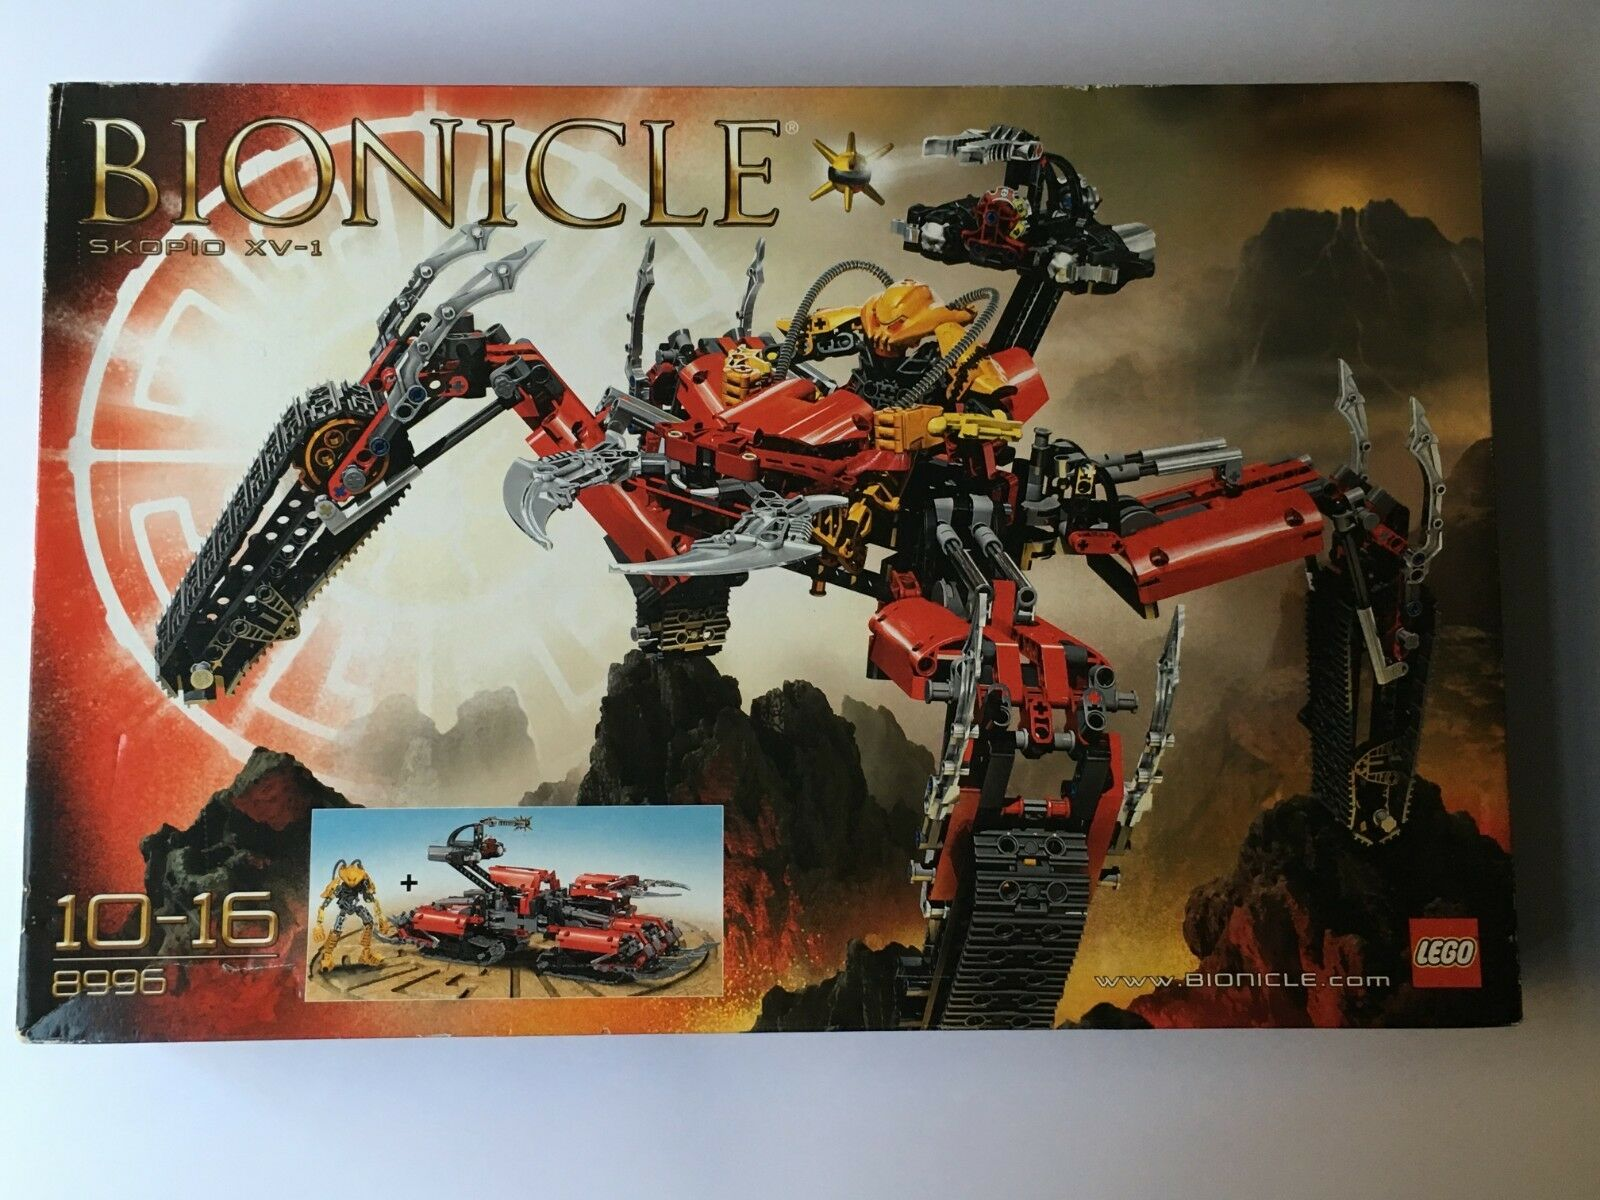 LEGO 8996 BIONICLE SKOPIO XV-1 NISB new sealed nuovo sigillato